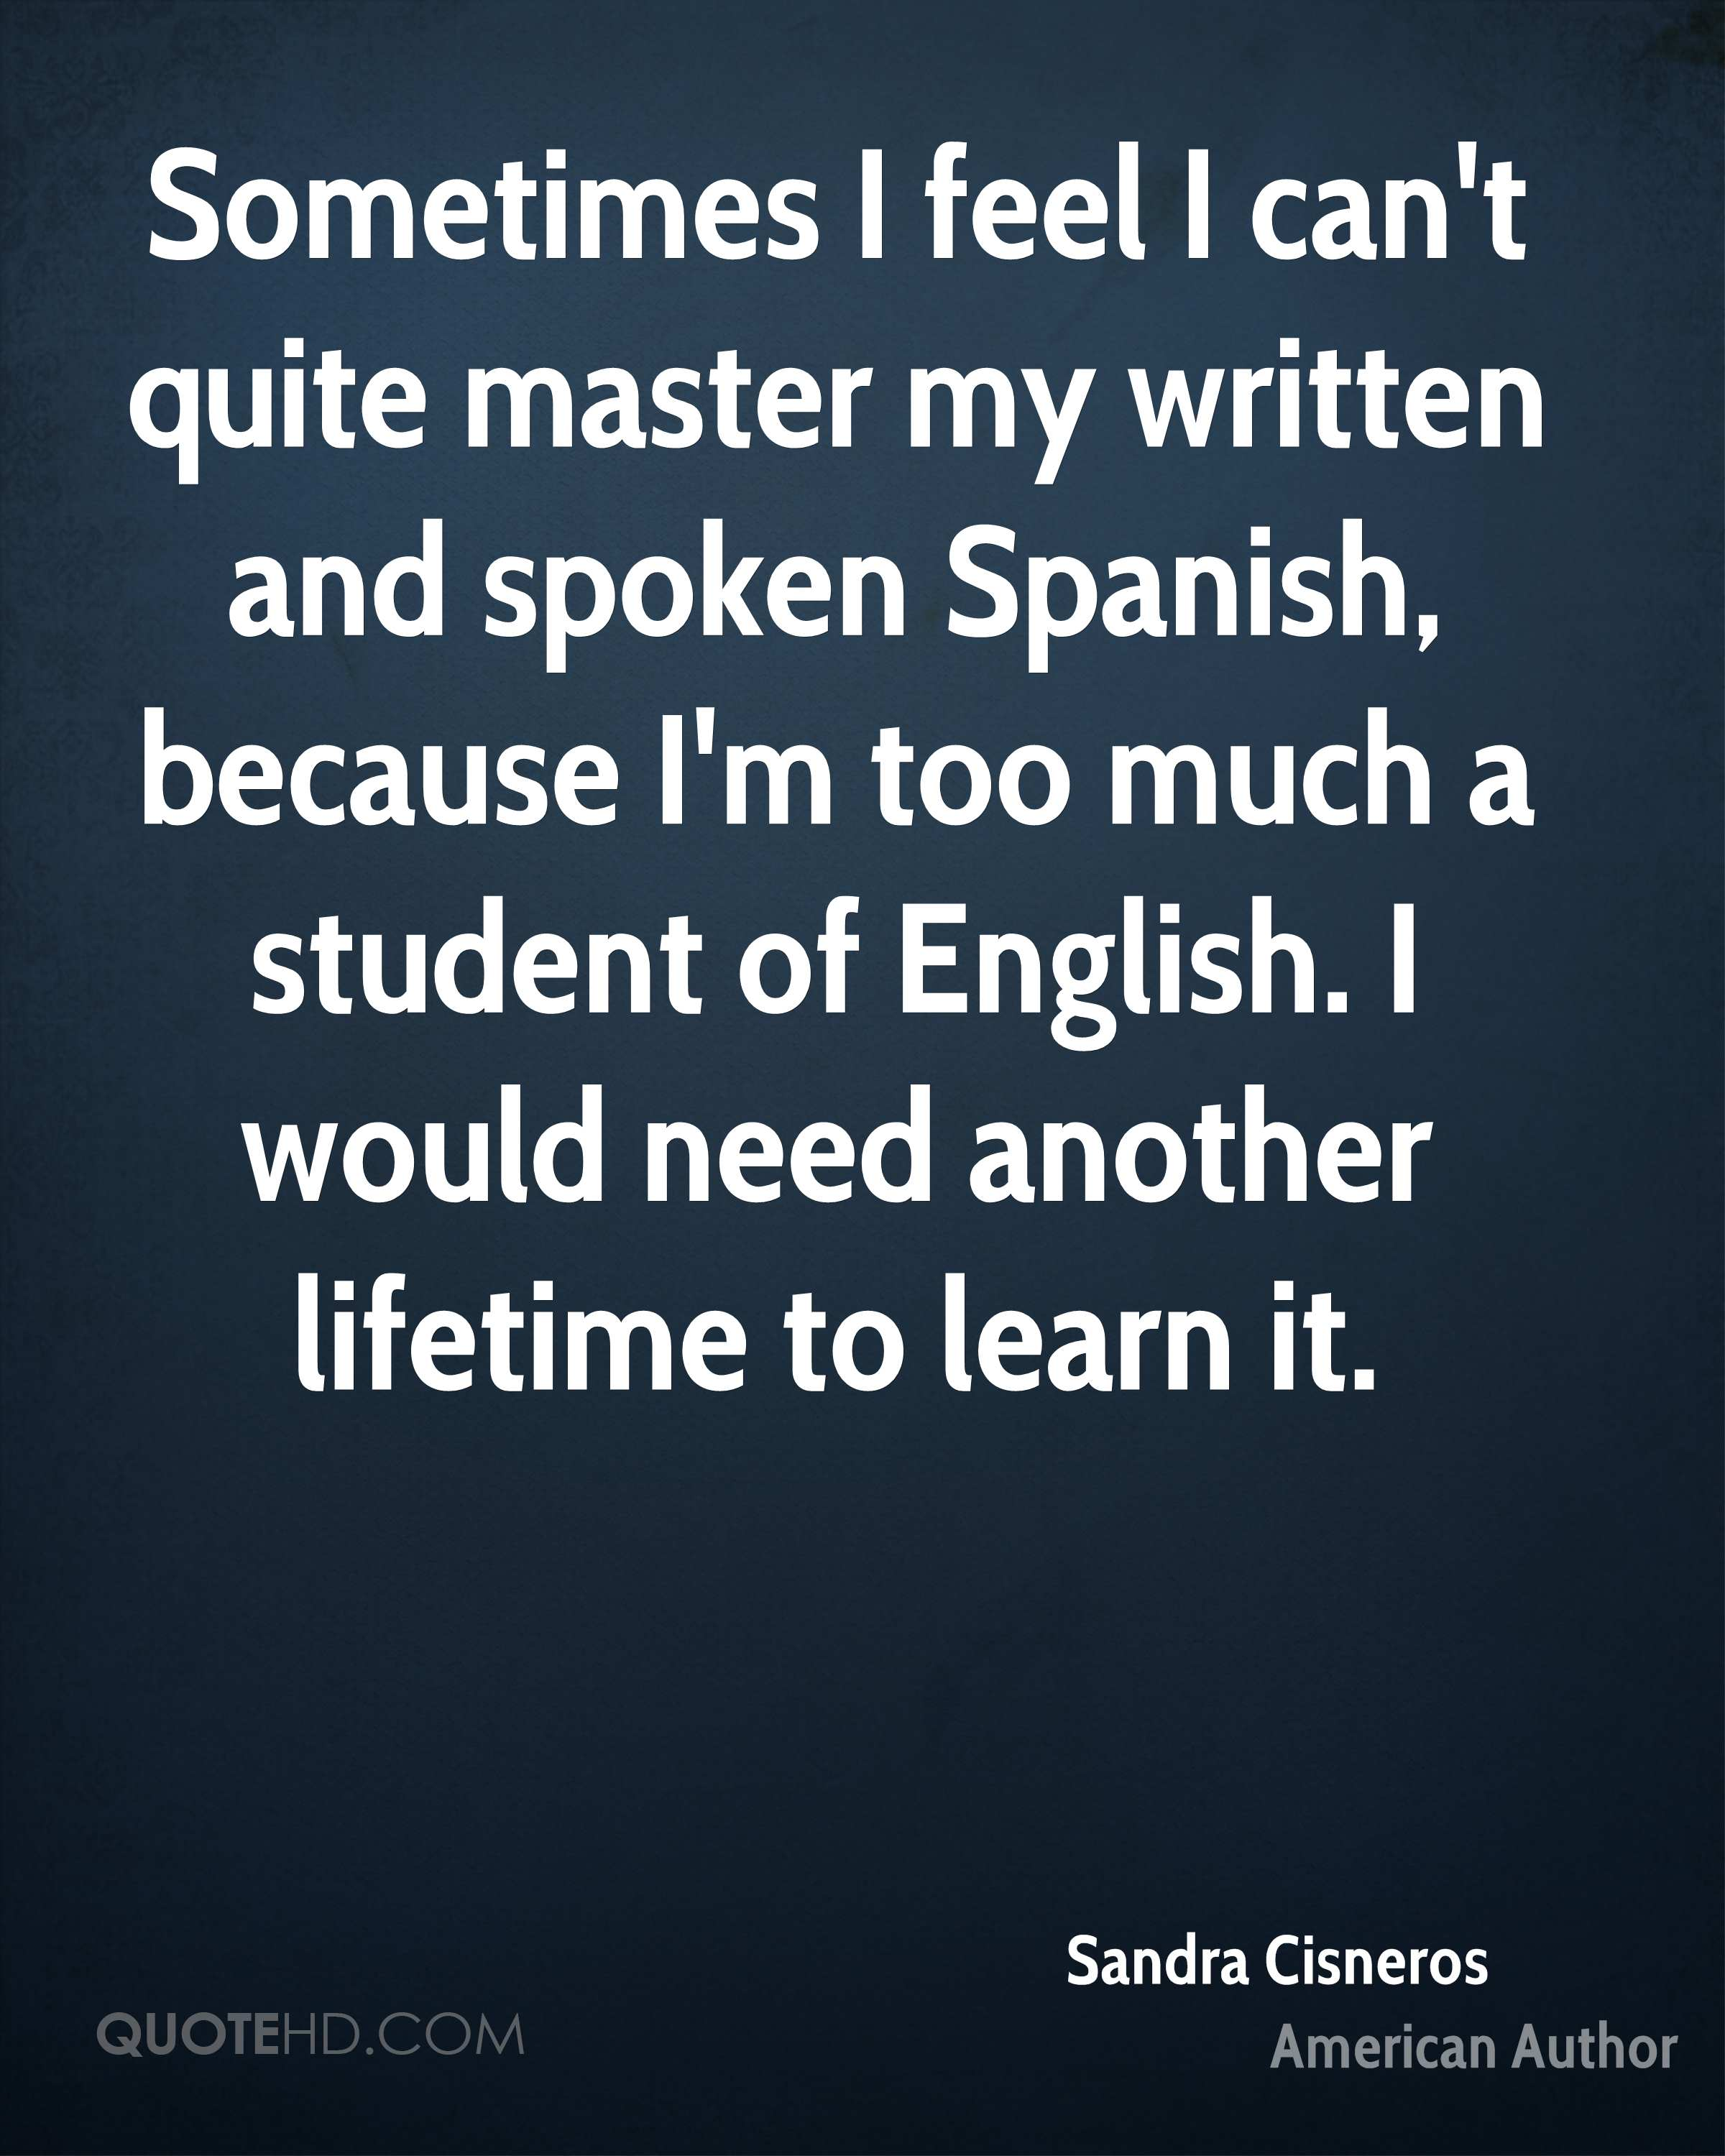 Sometimes I feel I can't quite master my written and spoken Spanish, because I'm too much a student of English. I would need another lifetime to learn it.